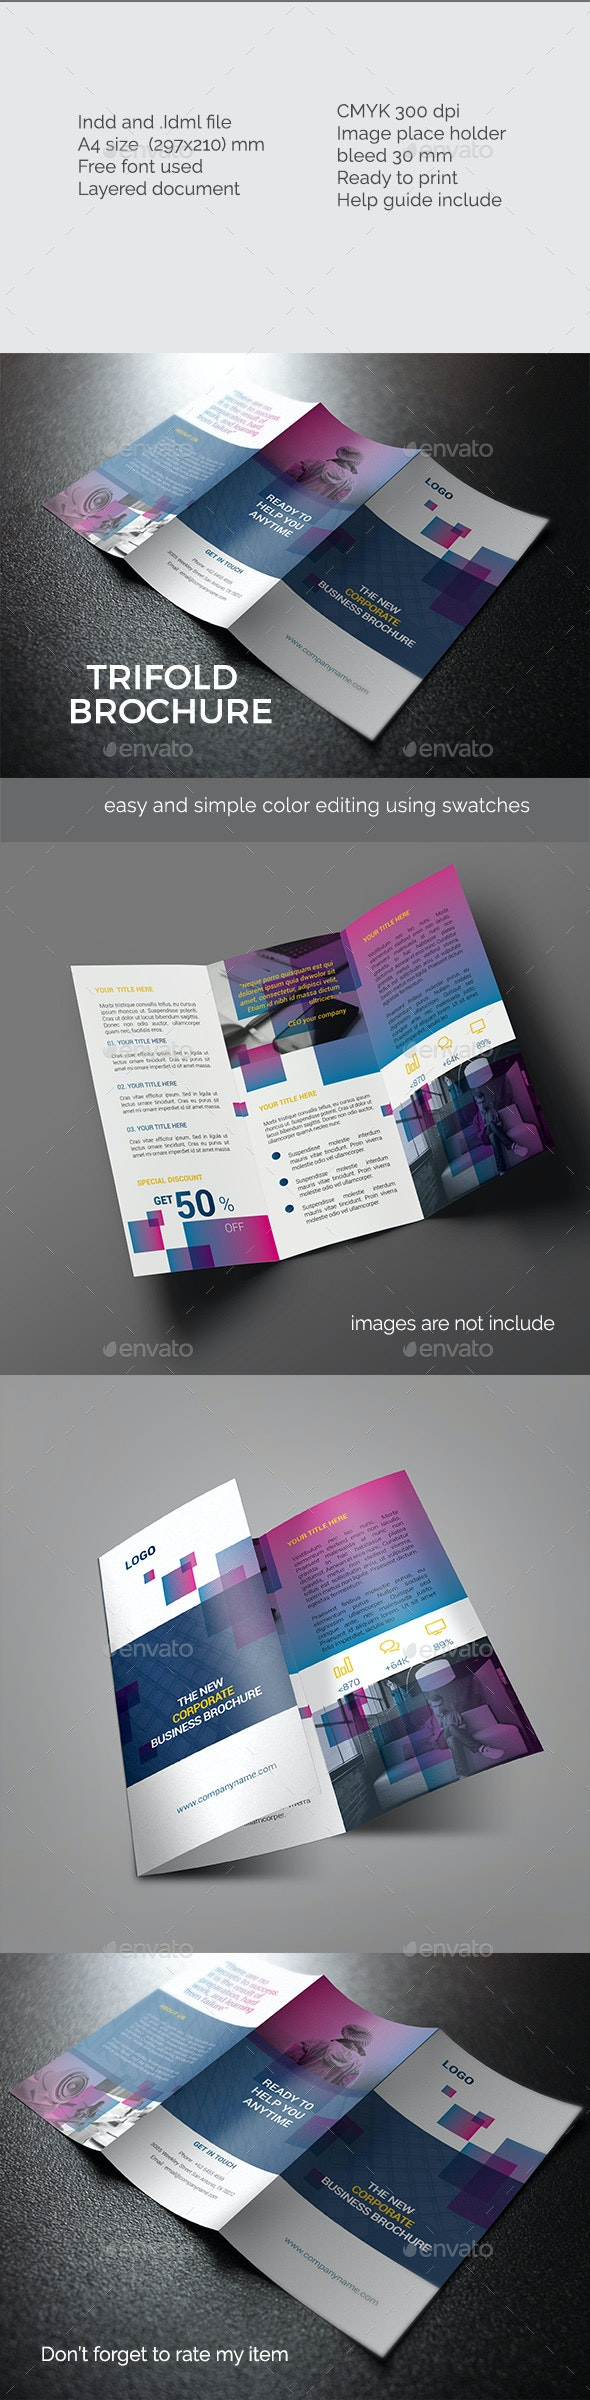 Elegant Trifold Brochure  - Corporate Brochures